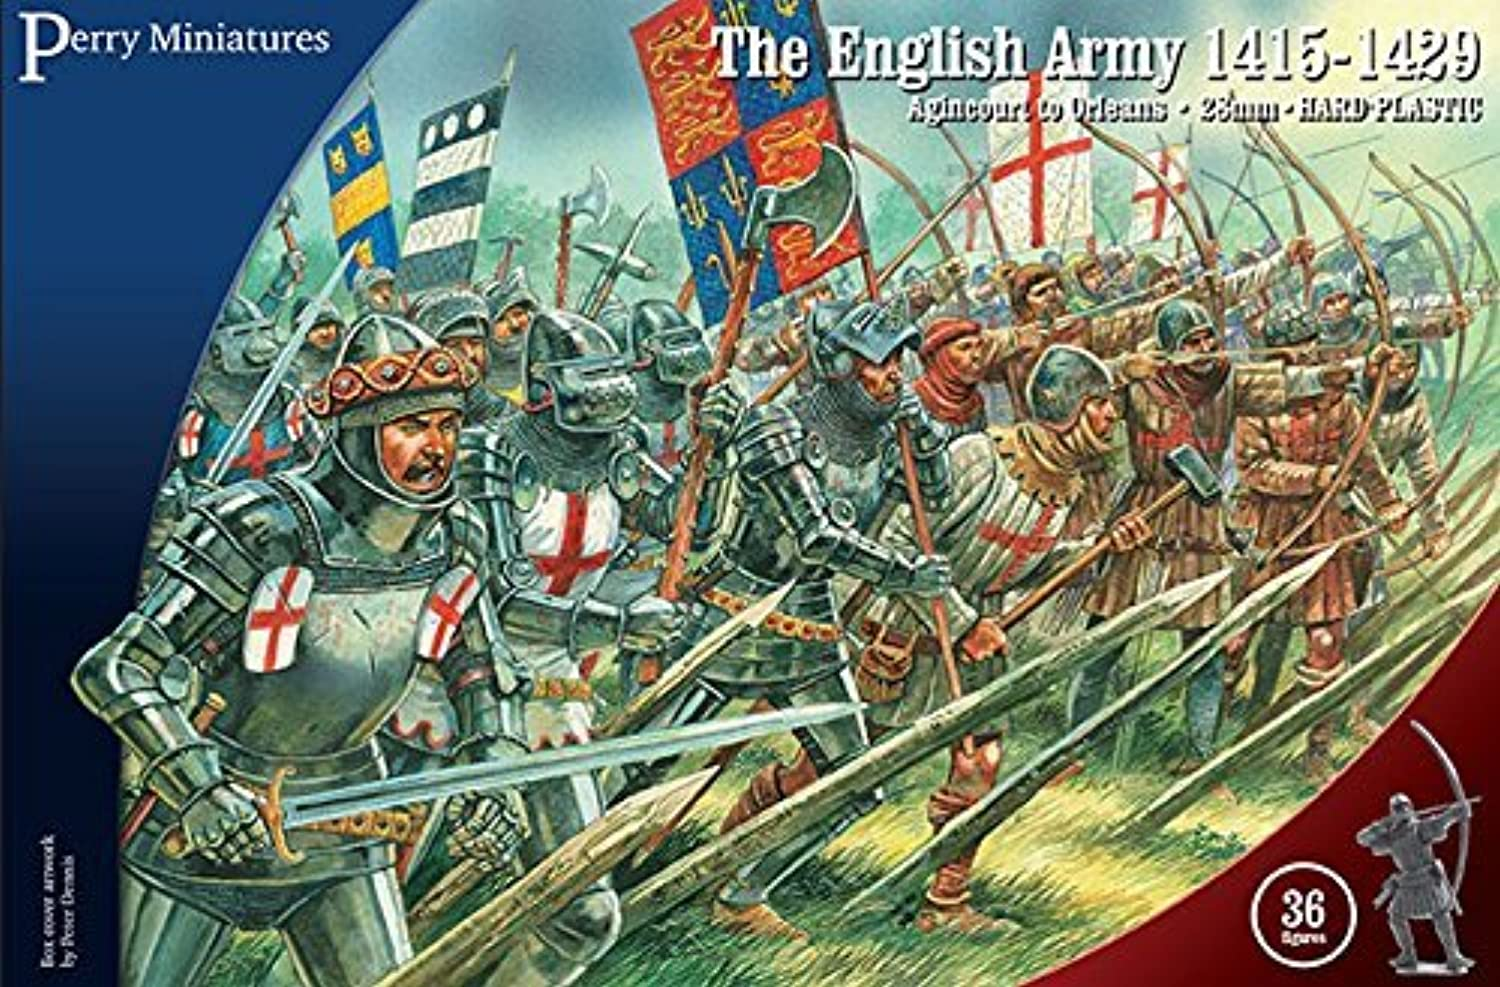 Perry Miniatures AO40 English Army 141529 Agincourt to Orleans 28mm 1 56 Hard Plastic Figures x 36 by Perry Miniatures